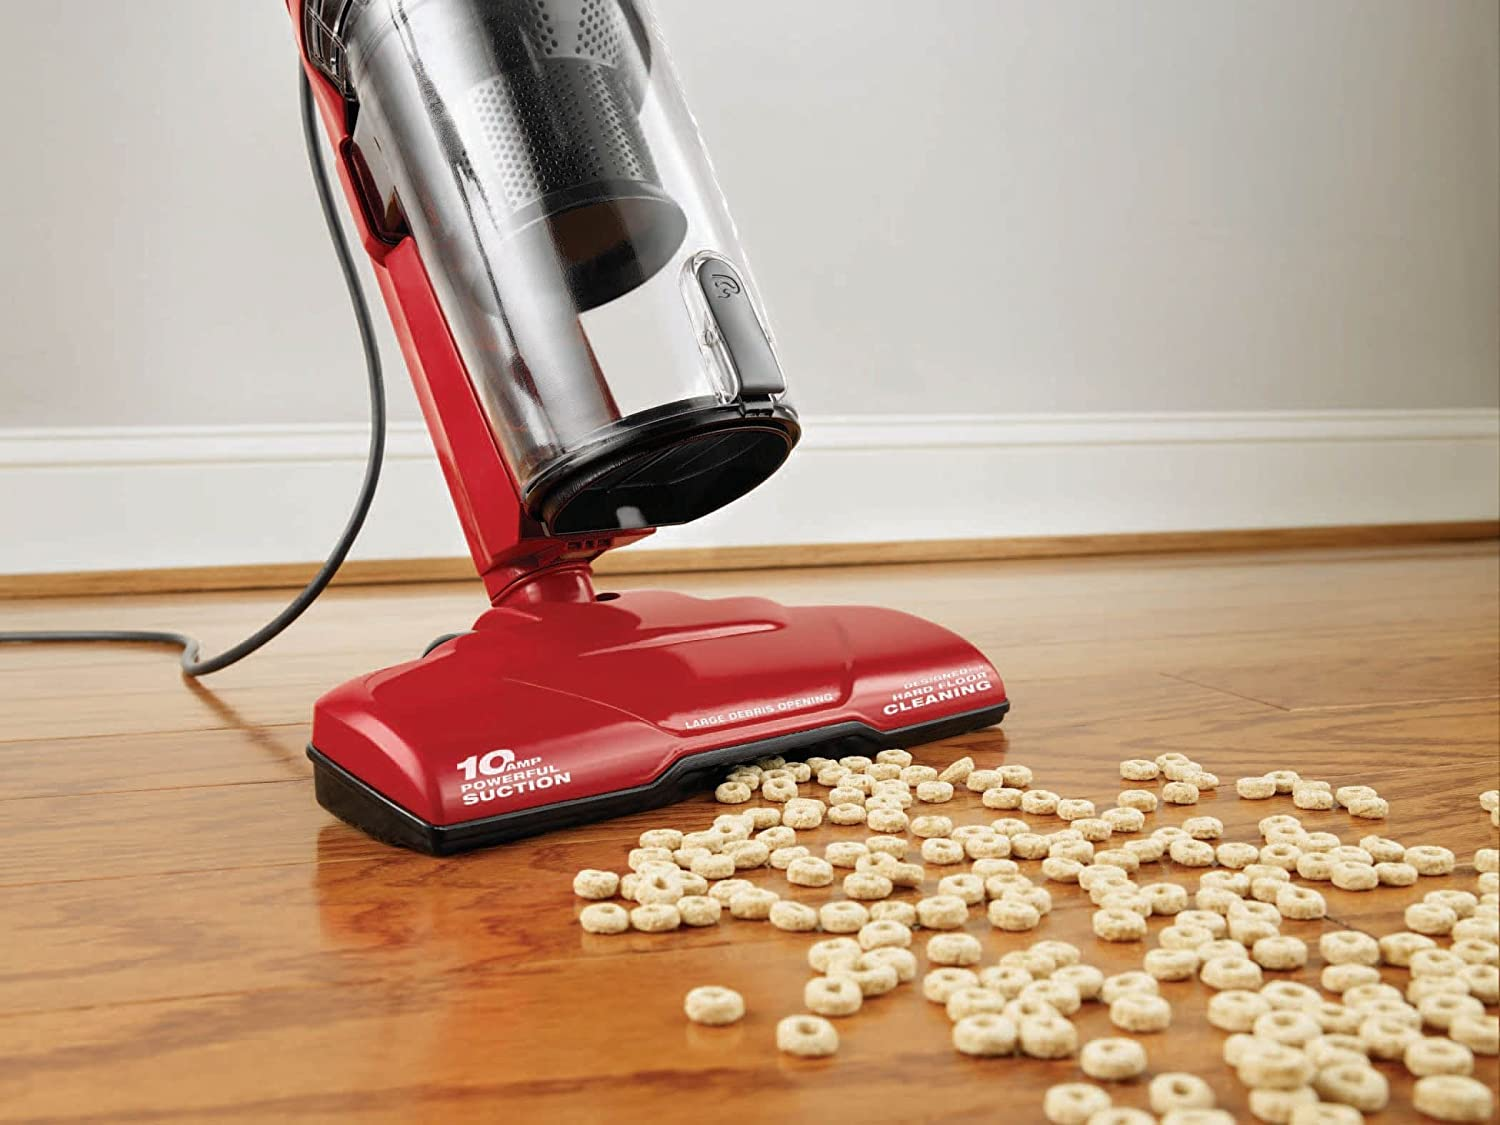 Best vacuum for hardwood and carpet - Comparison Chart Of The Best Vacuums For Wood Floors